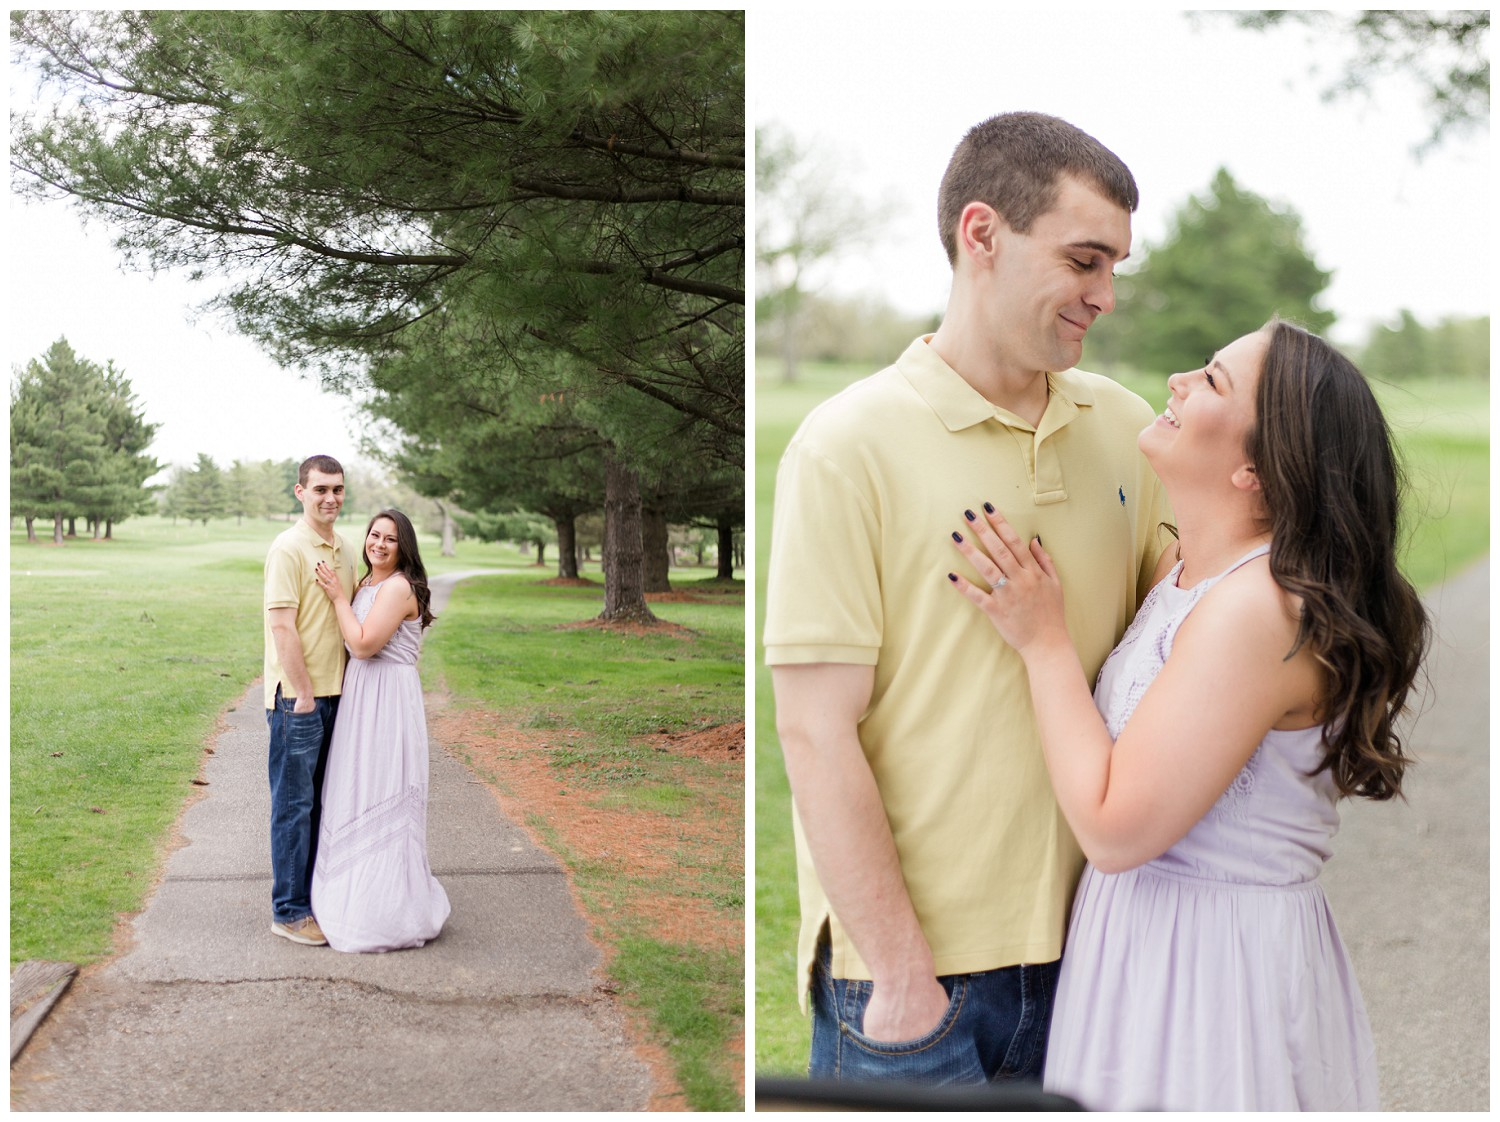 belwood-country-club-engagement-session_0006.jpg